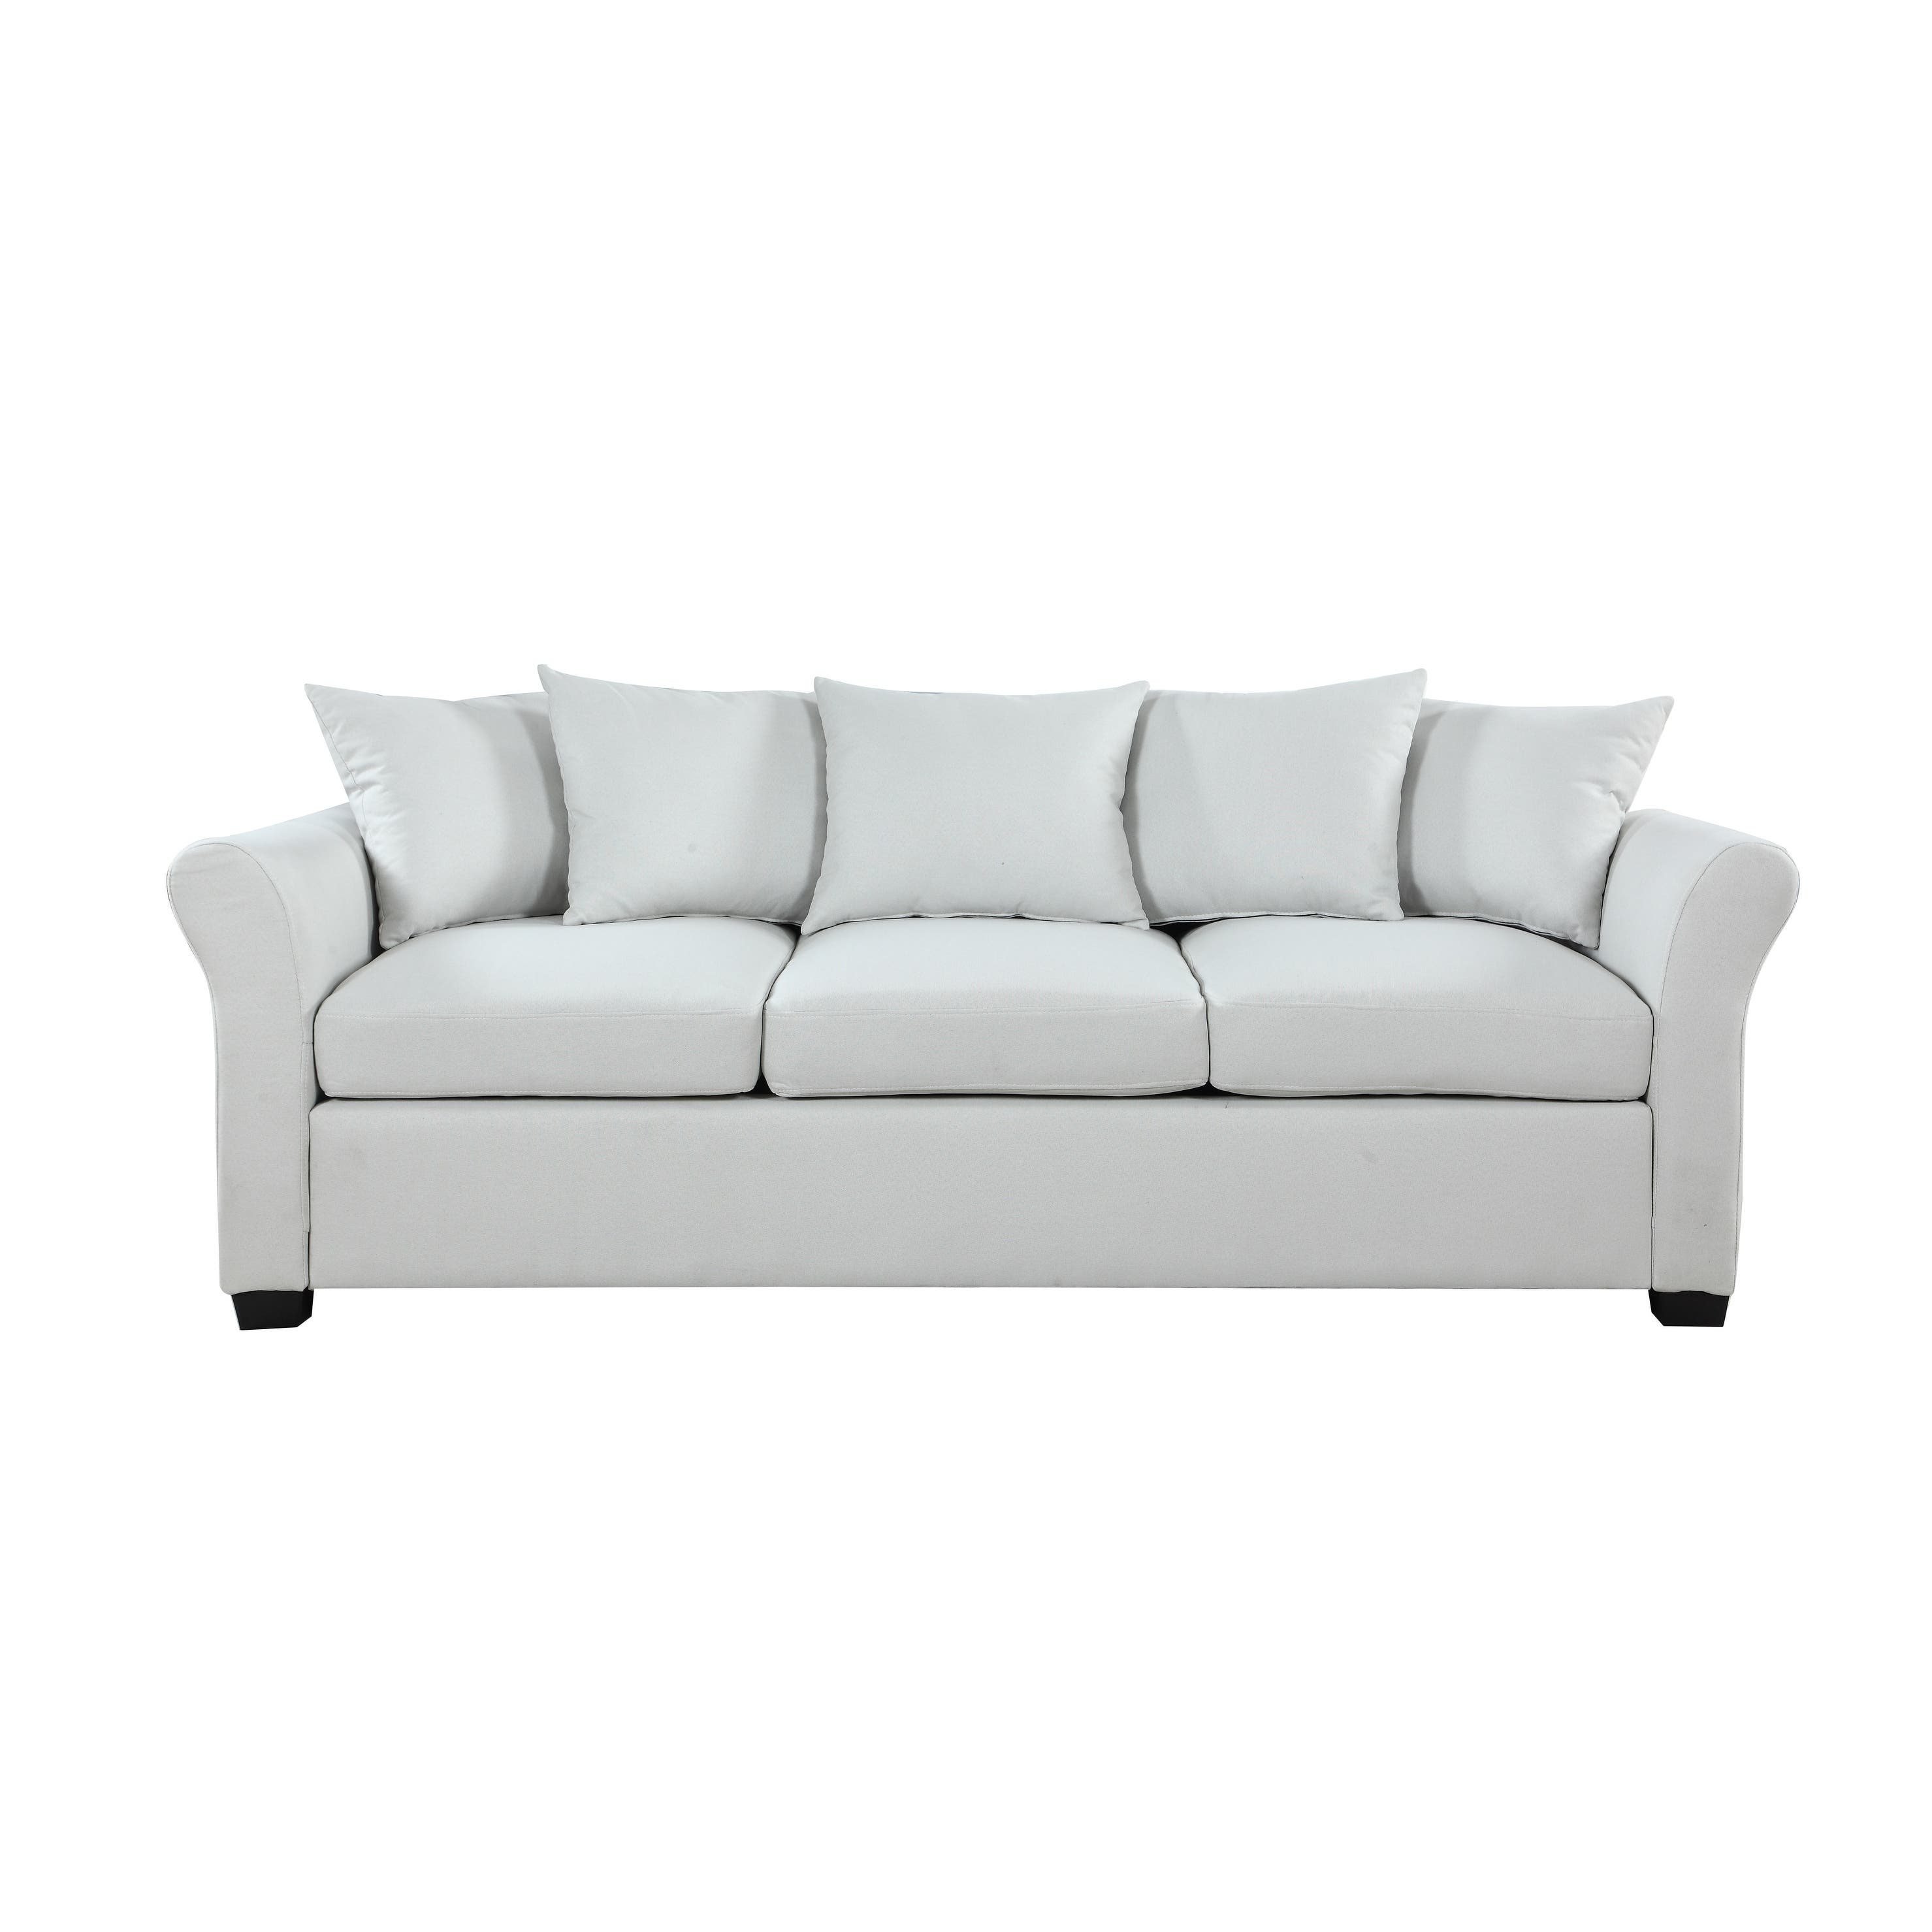 Buy Sofas & Couches Online at Overstock.com | Our Best Living Room ...